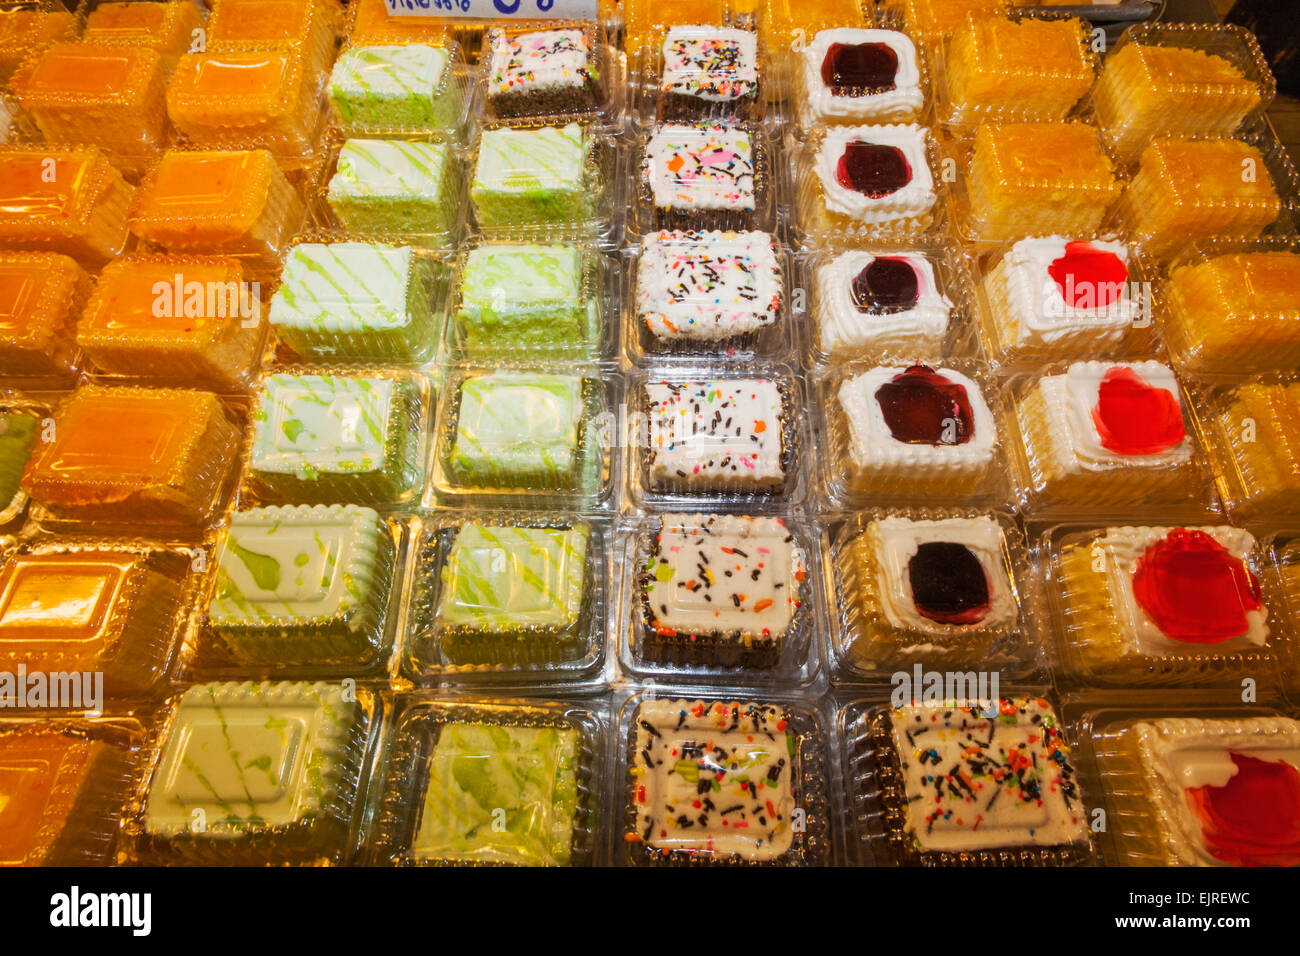 Thailand Chiang Mai Warorot Market Thai Cakes And Desserts